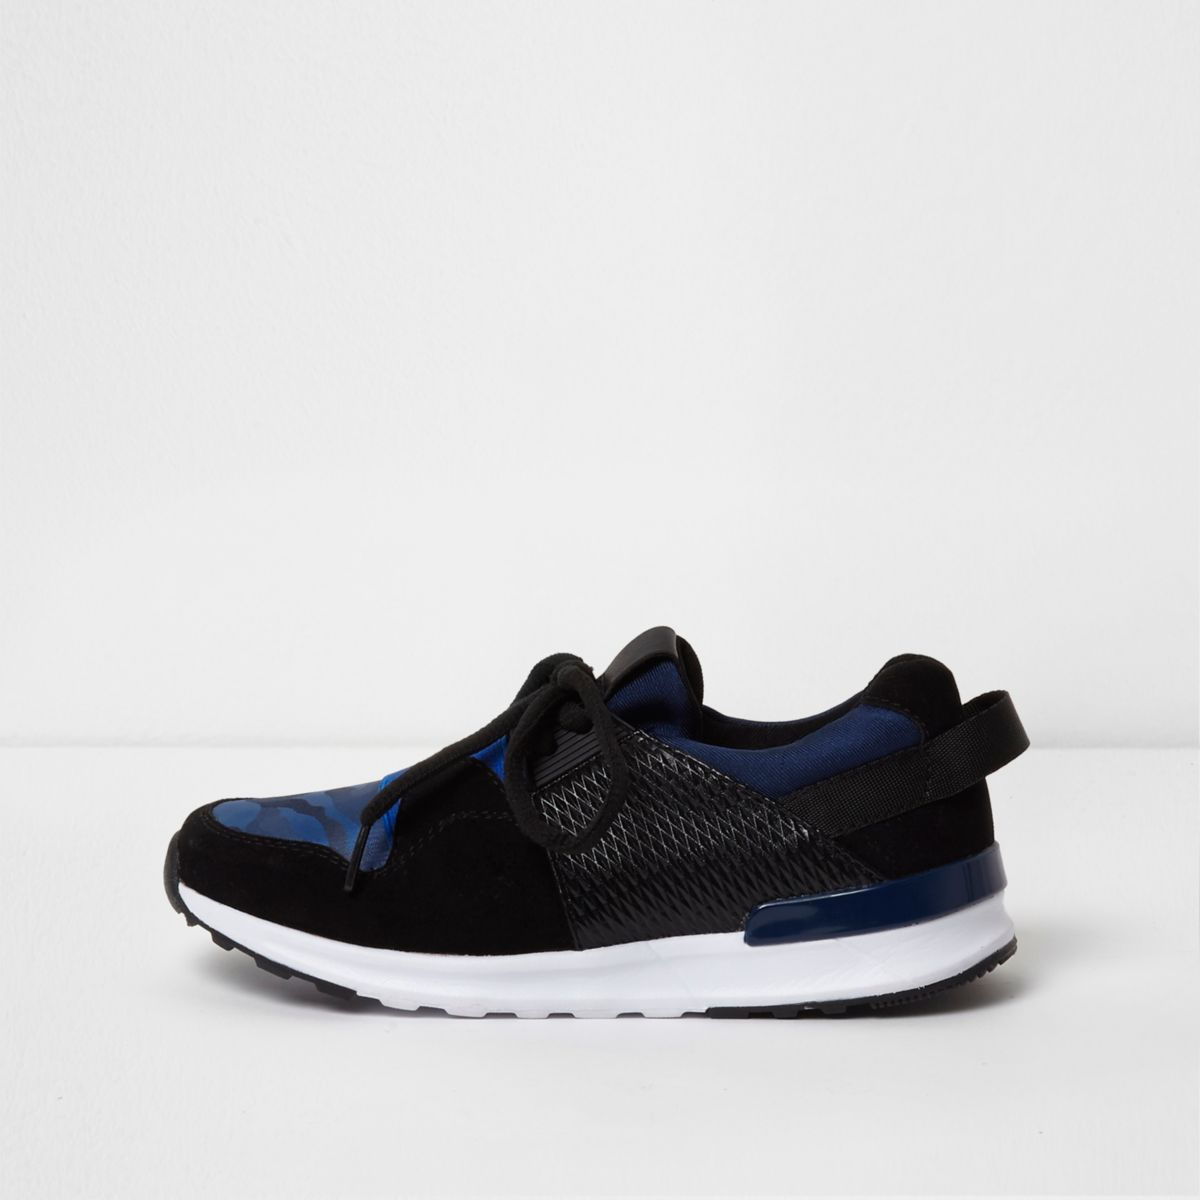 Boys blue camo insert runner sneakers